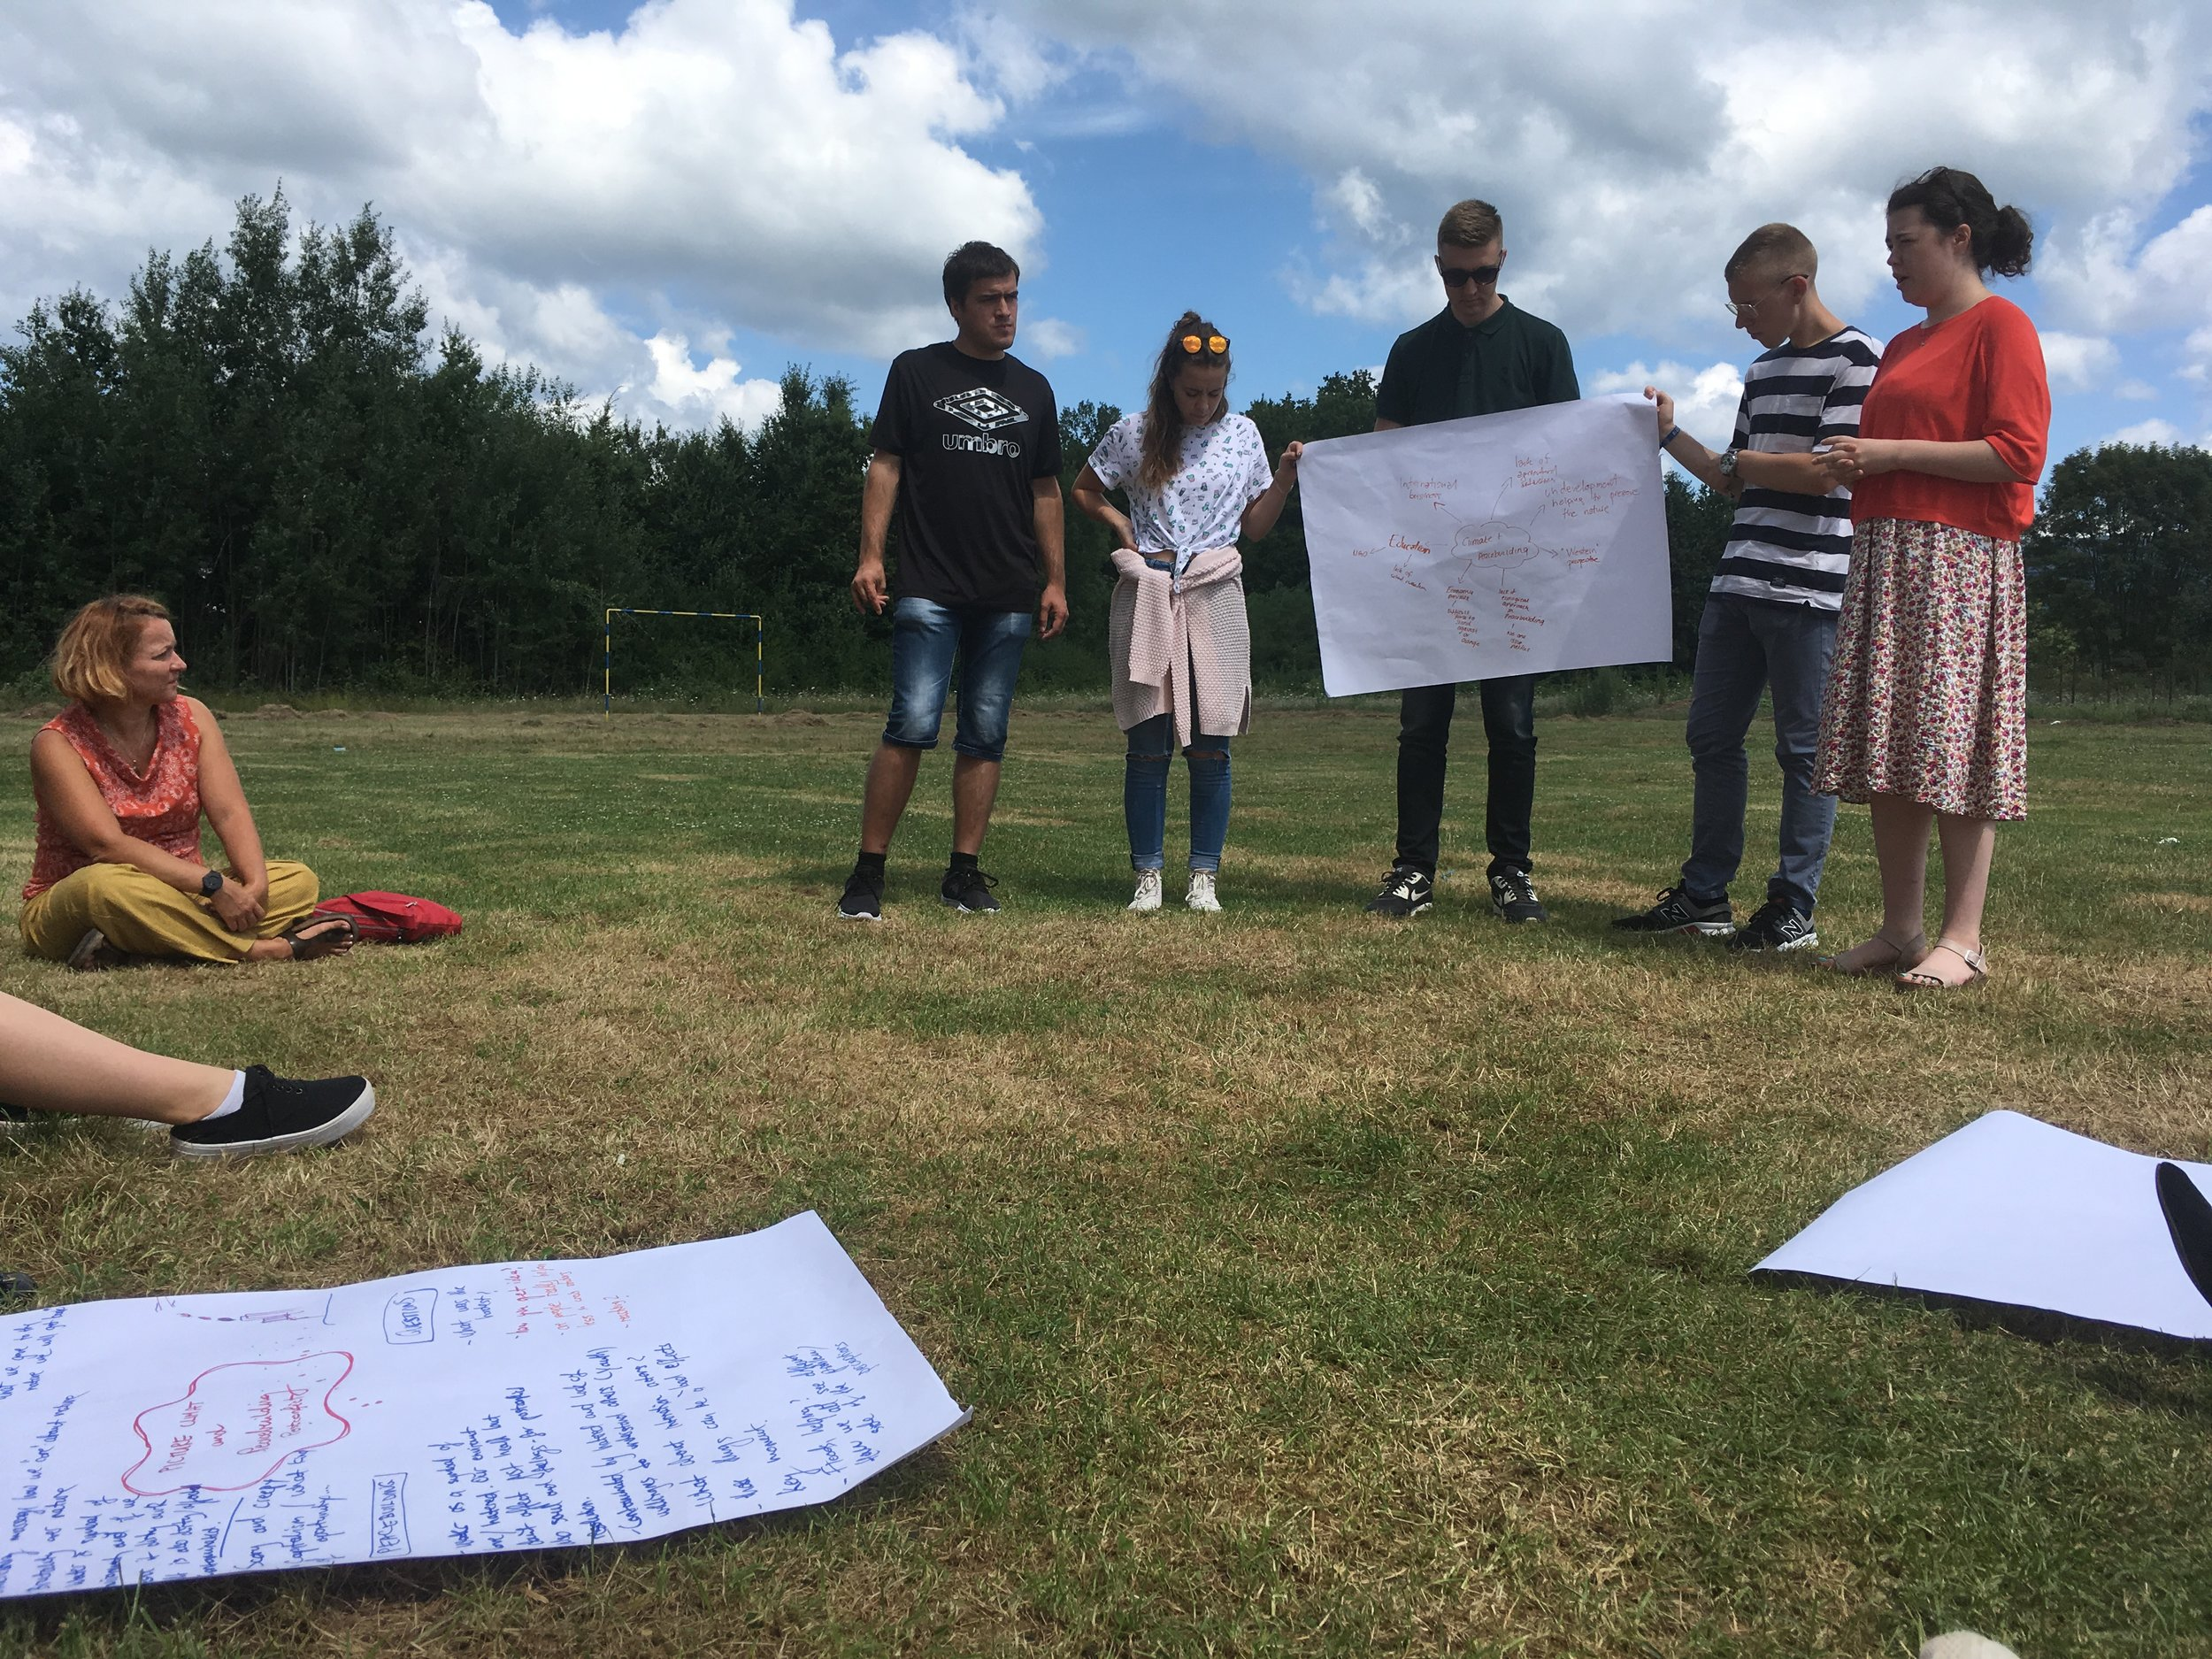 Participants in the POP and theatre projects come together to discuss issues of climate change and environment in Kevljani, Bosnia and Herzegovina. Photo: Agnes Czajka